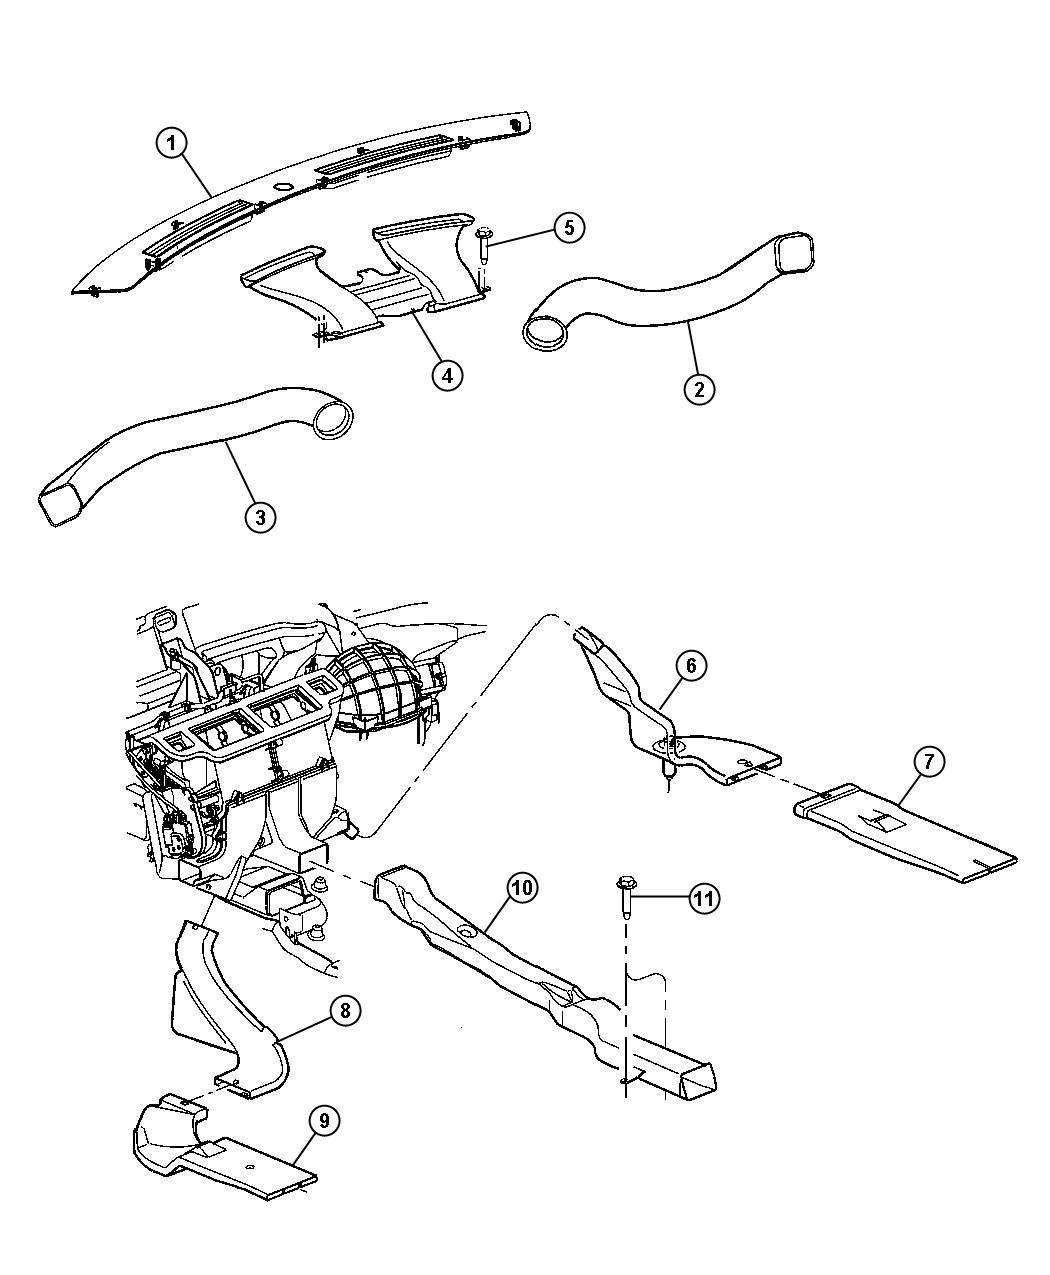 Service manual [2009 Chrysler 300 Heater Blower Replace